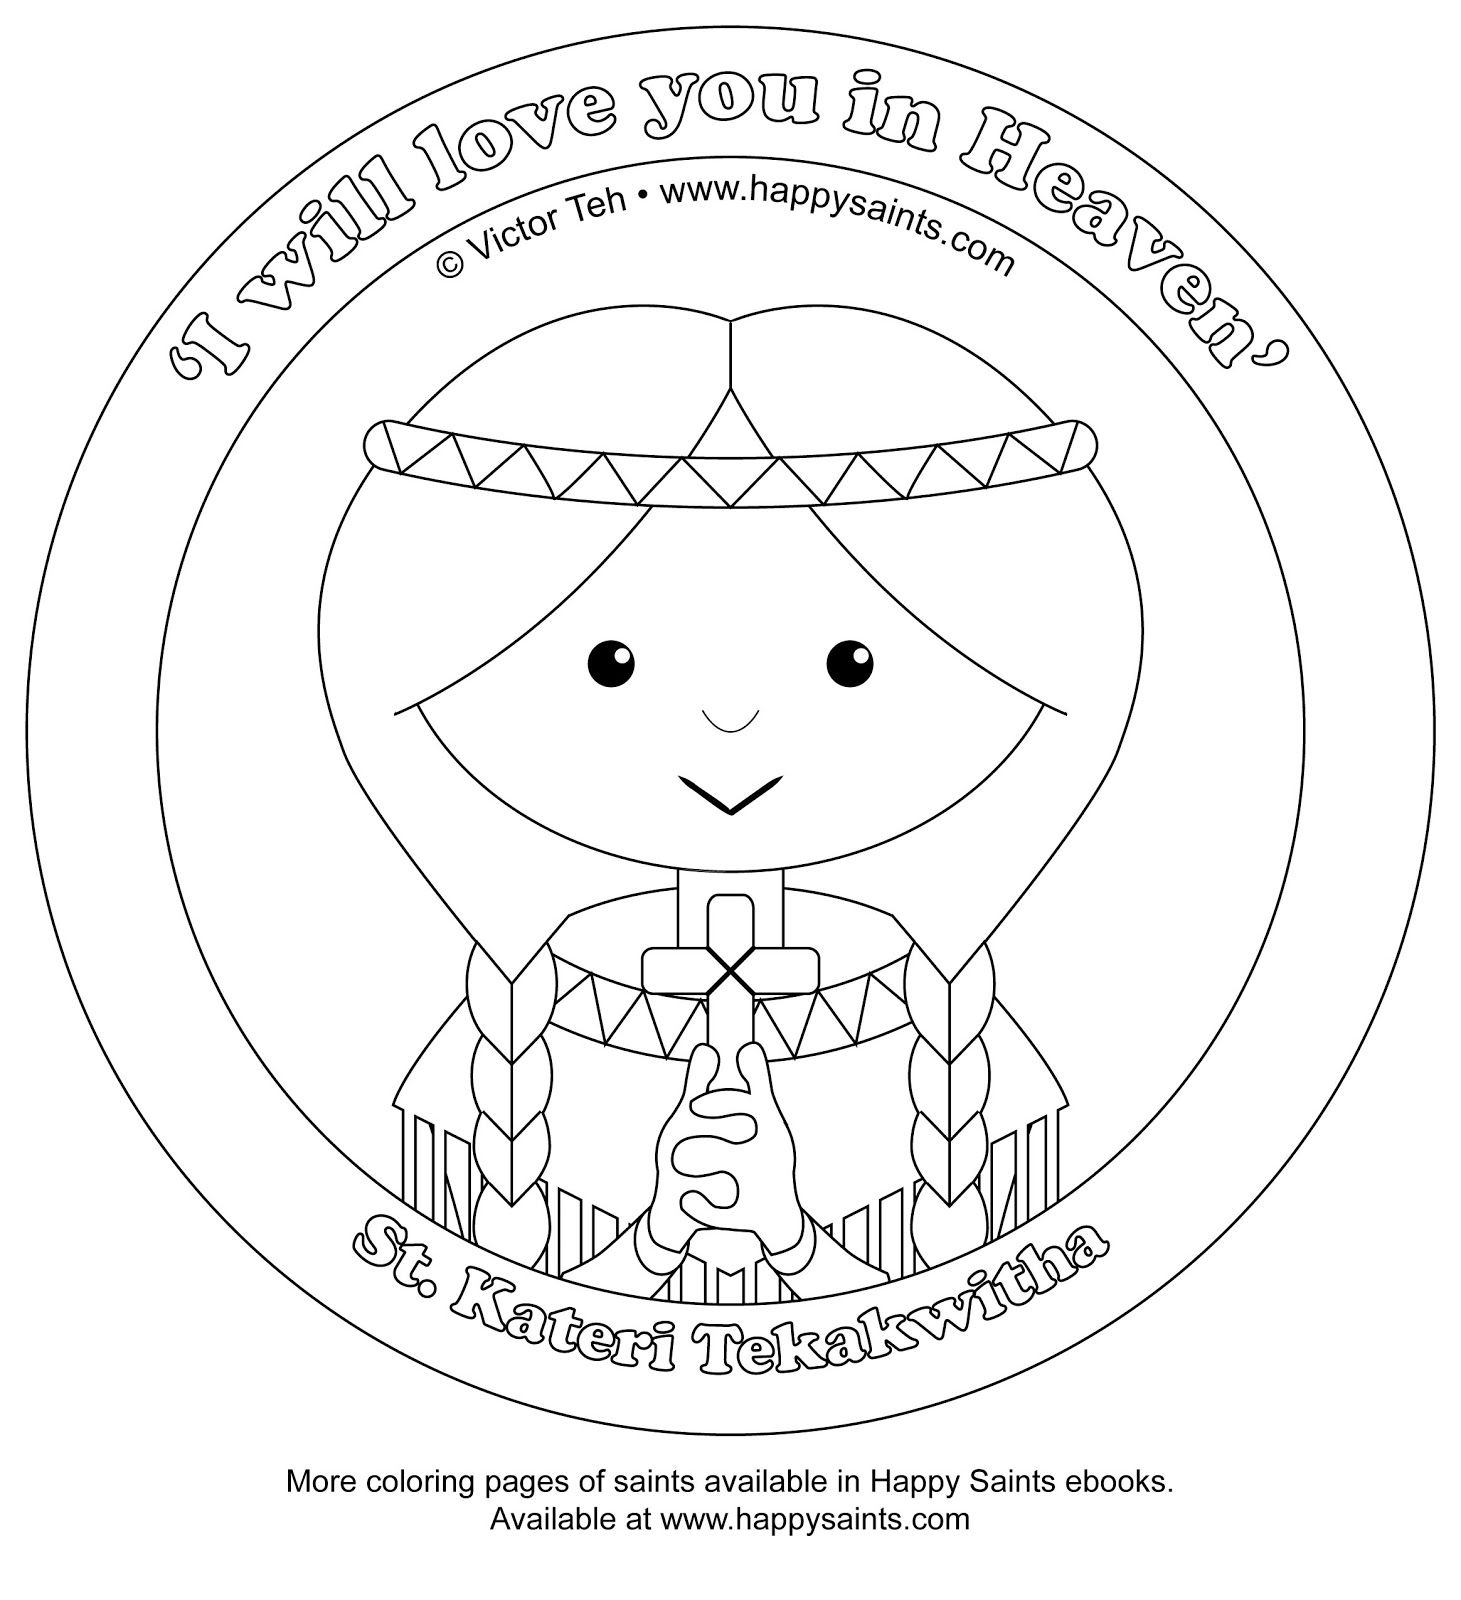 Happy Saints: Coloring Pages of St. Pedro and St. Kateri